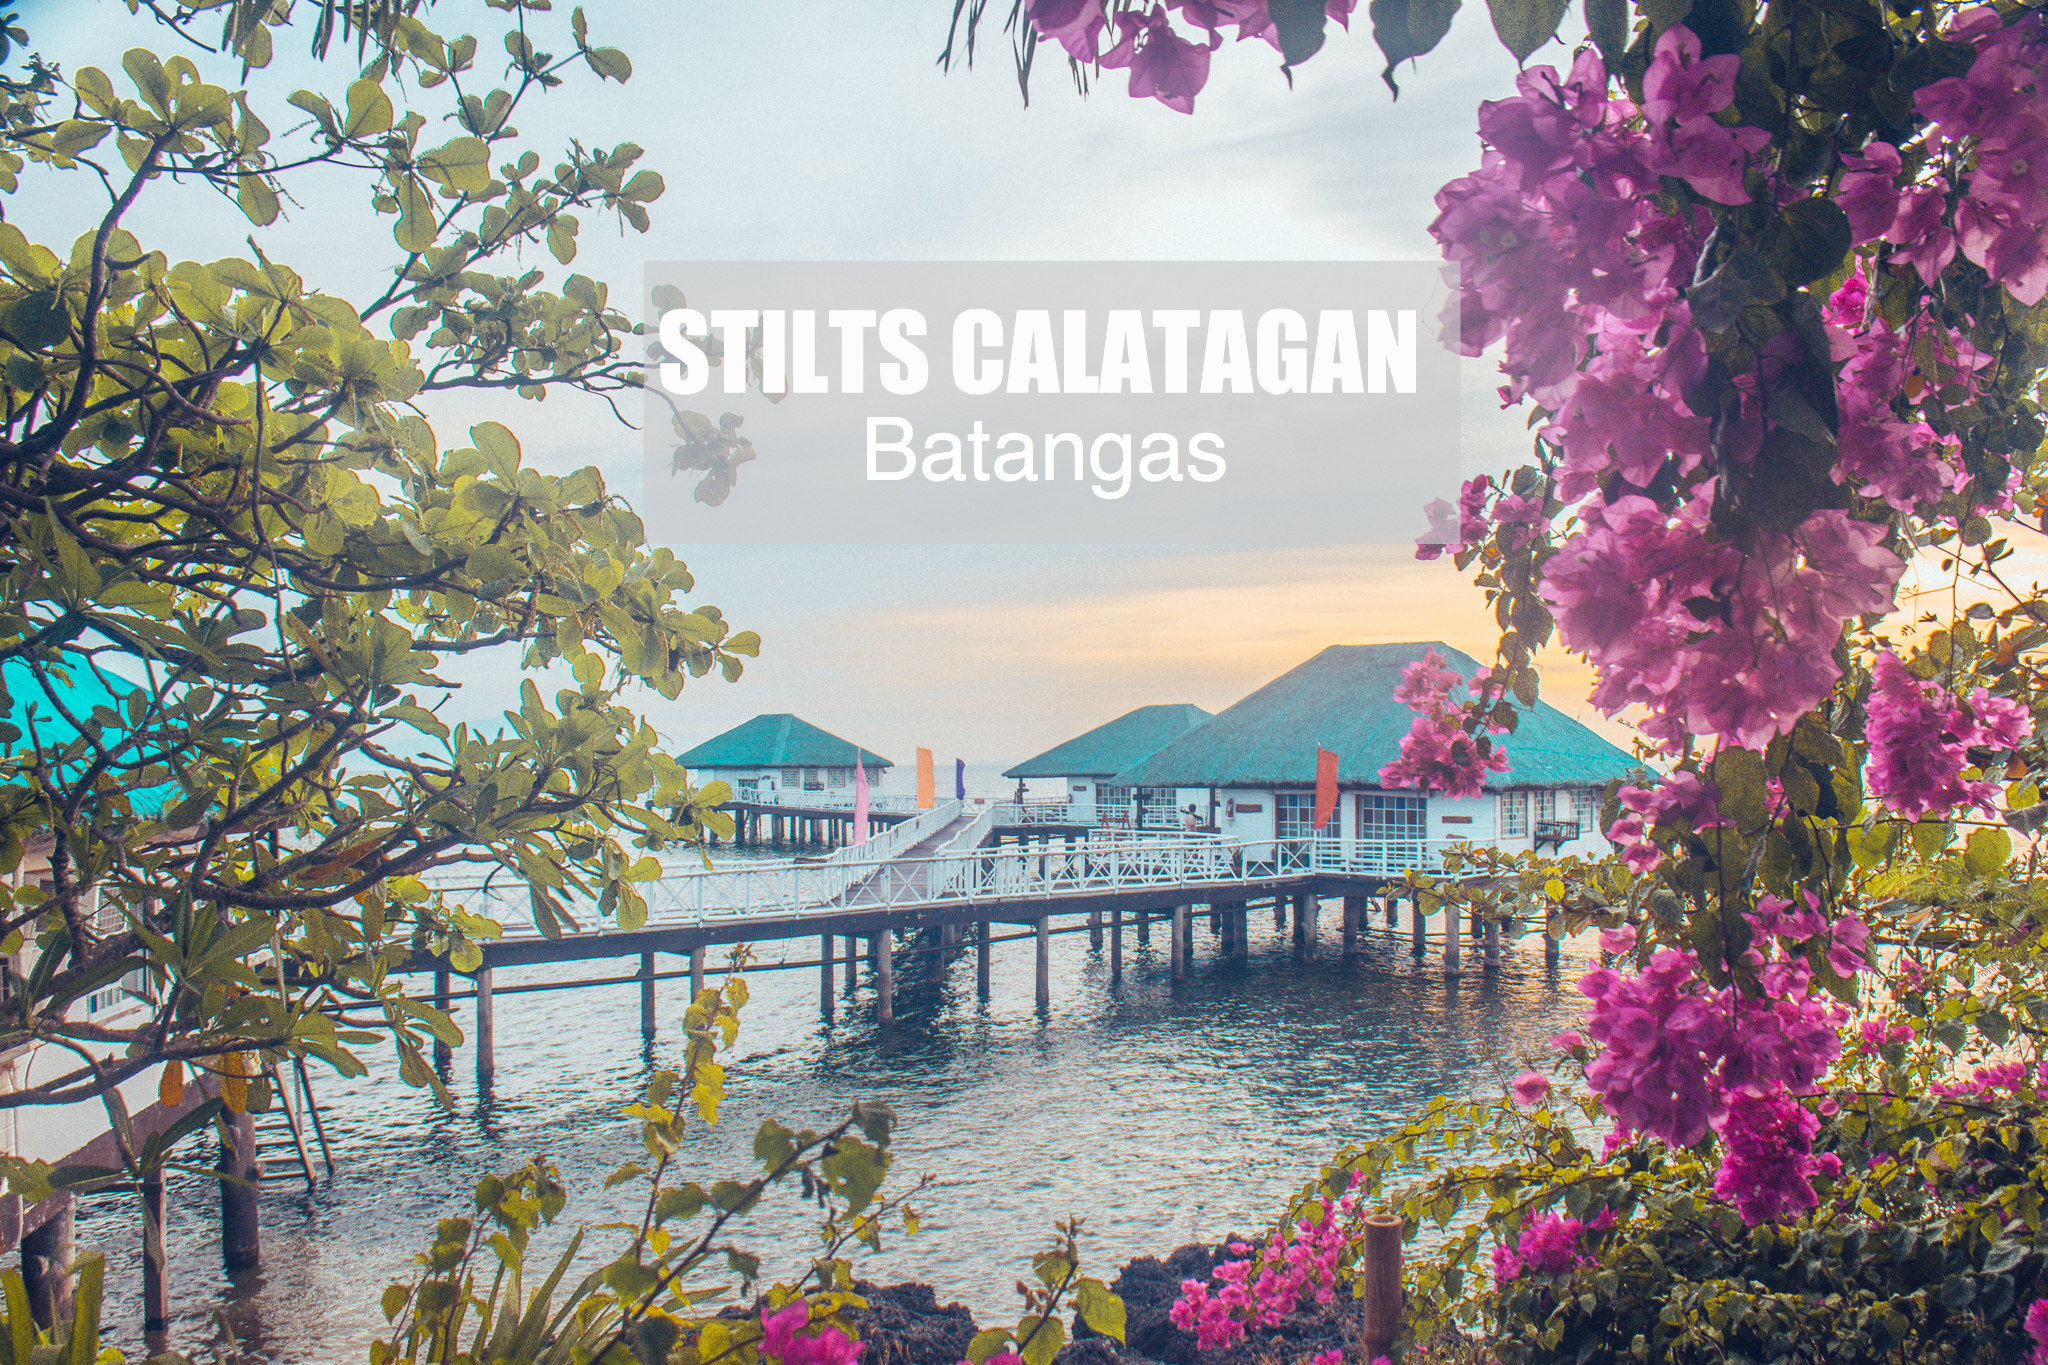 STILTS CALATAGAN BATANGAS: DIY TRAVEL GUIDE (Budget + Itinerary)